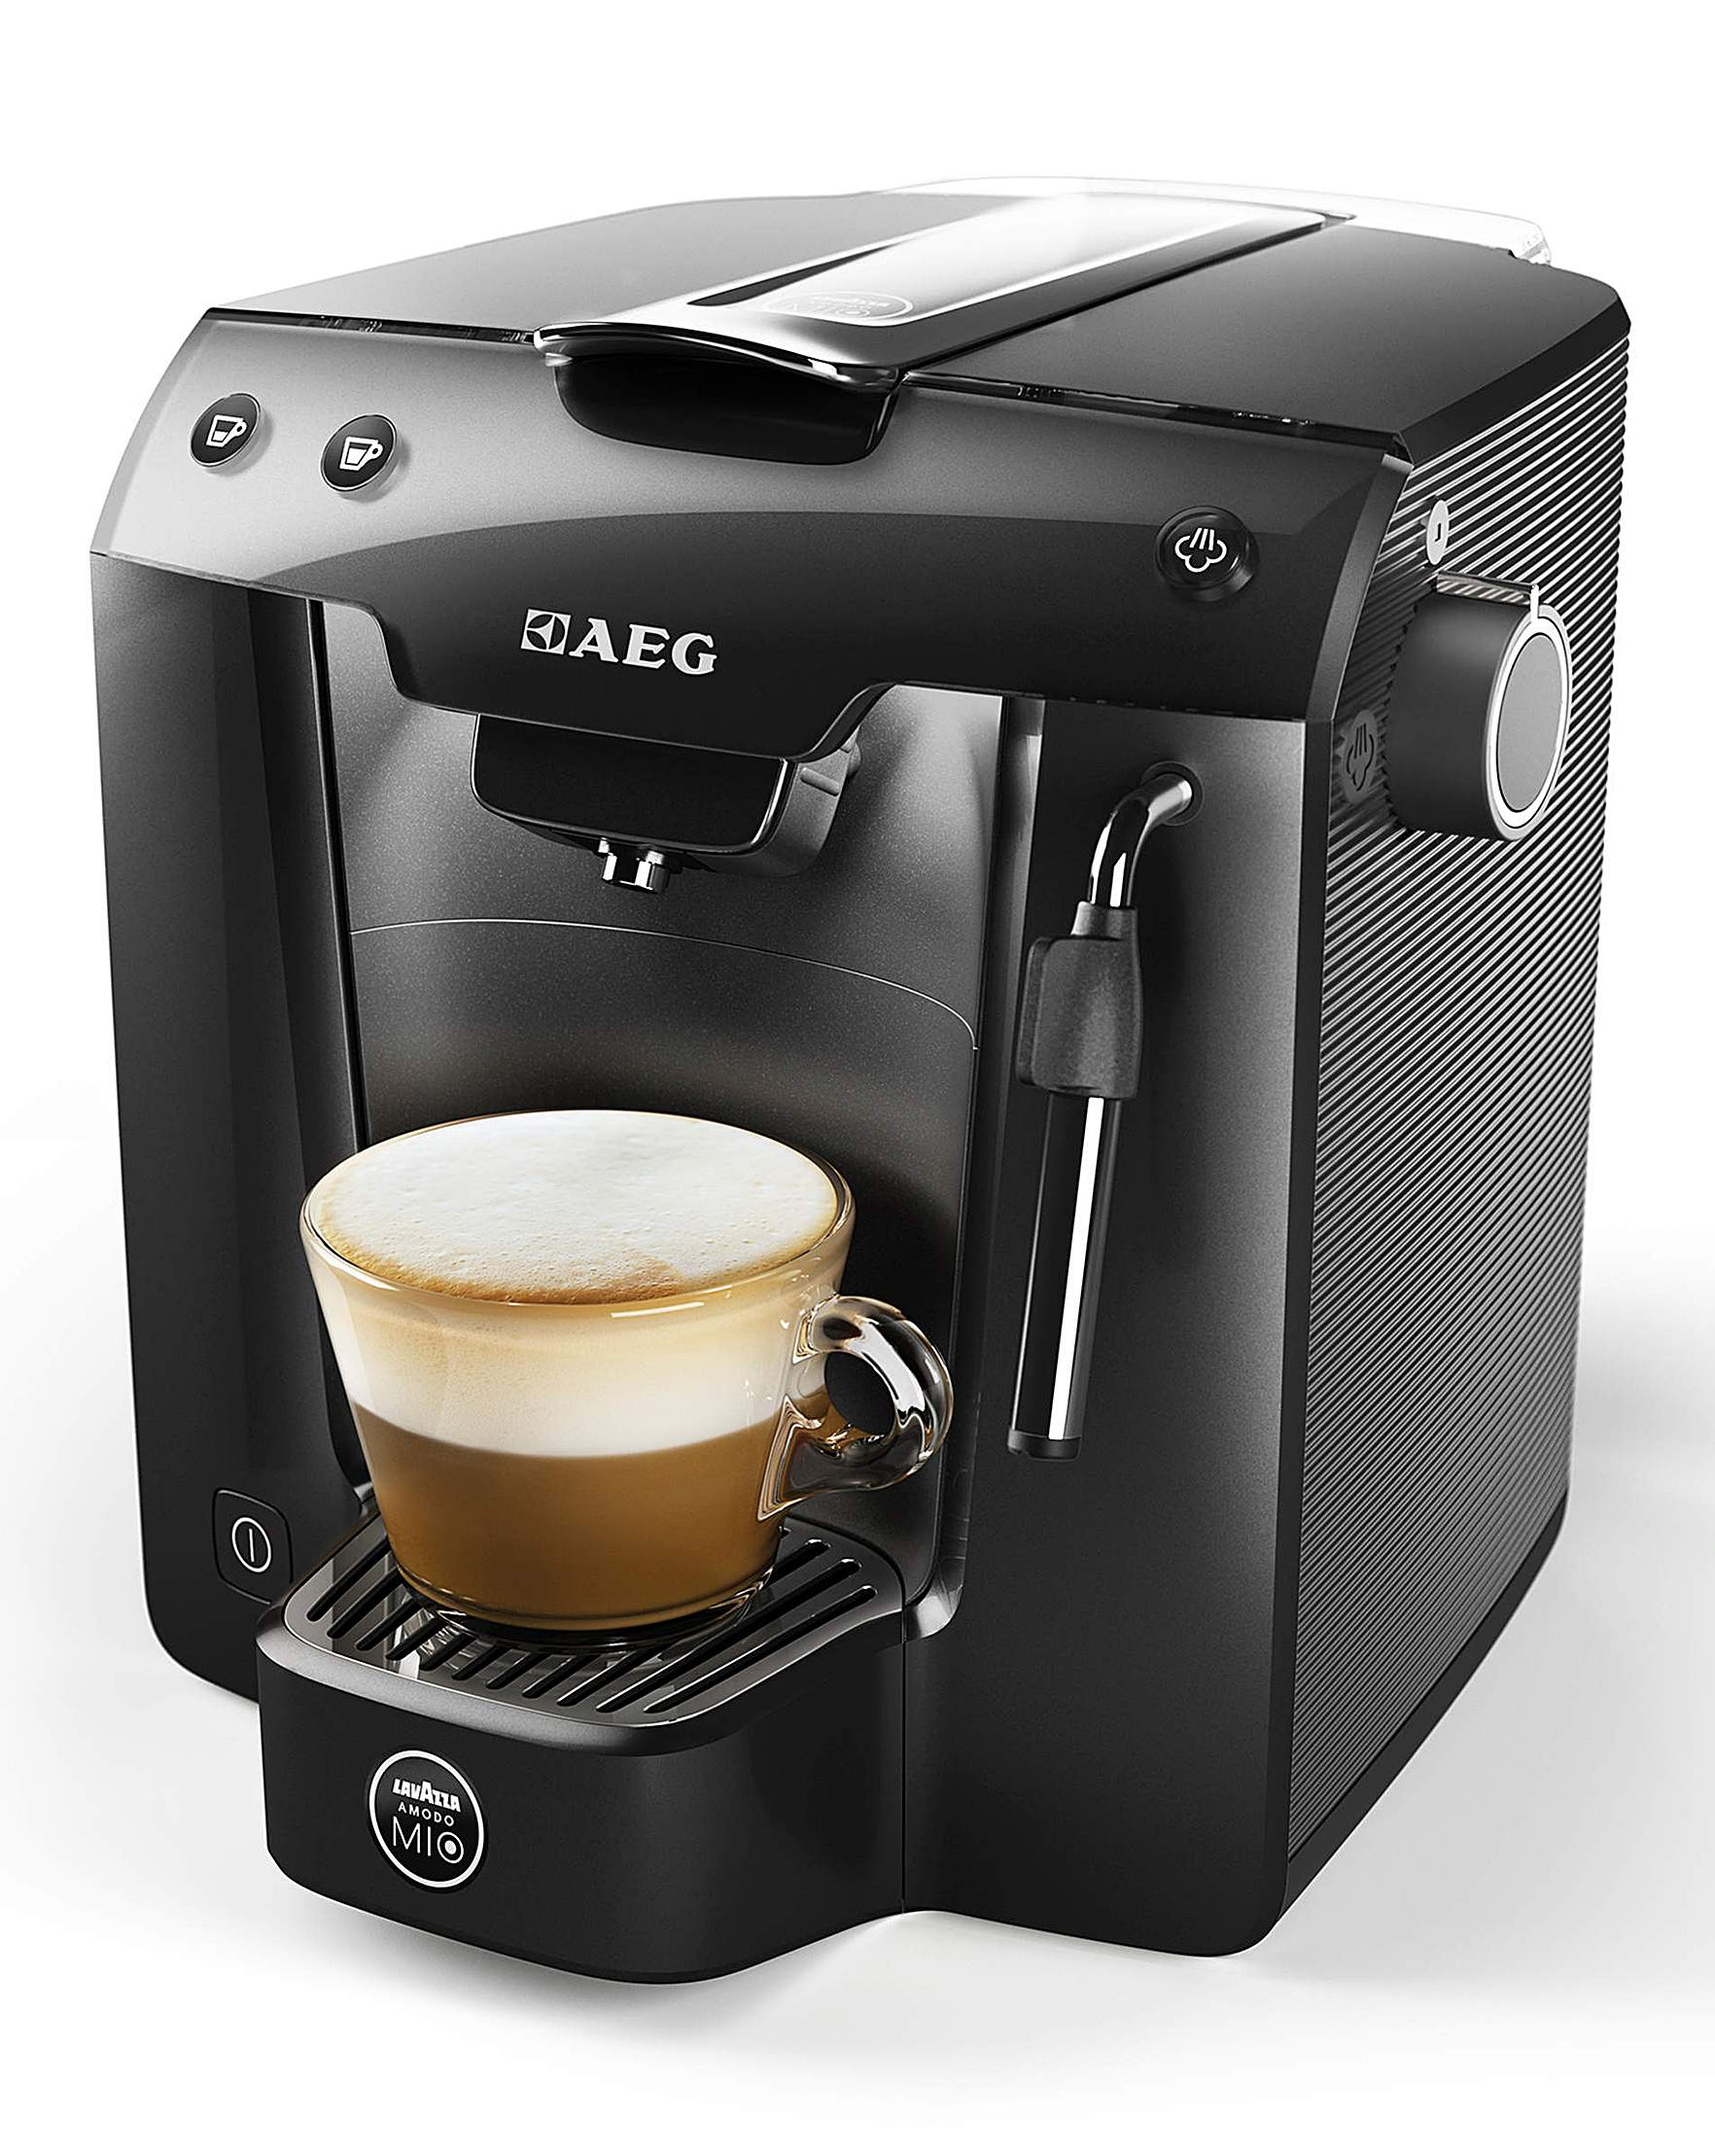 new aeg lm5200bk u lavazza a modo mio favola plus coffee. Black Bedroom Furniture Sets. Home Design Ideas